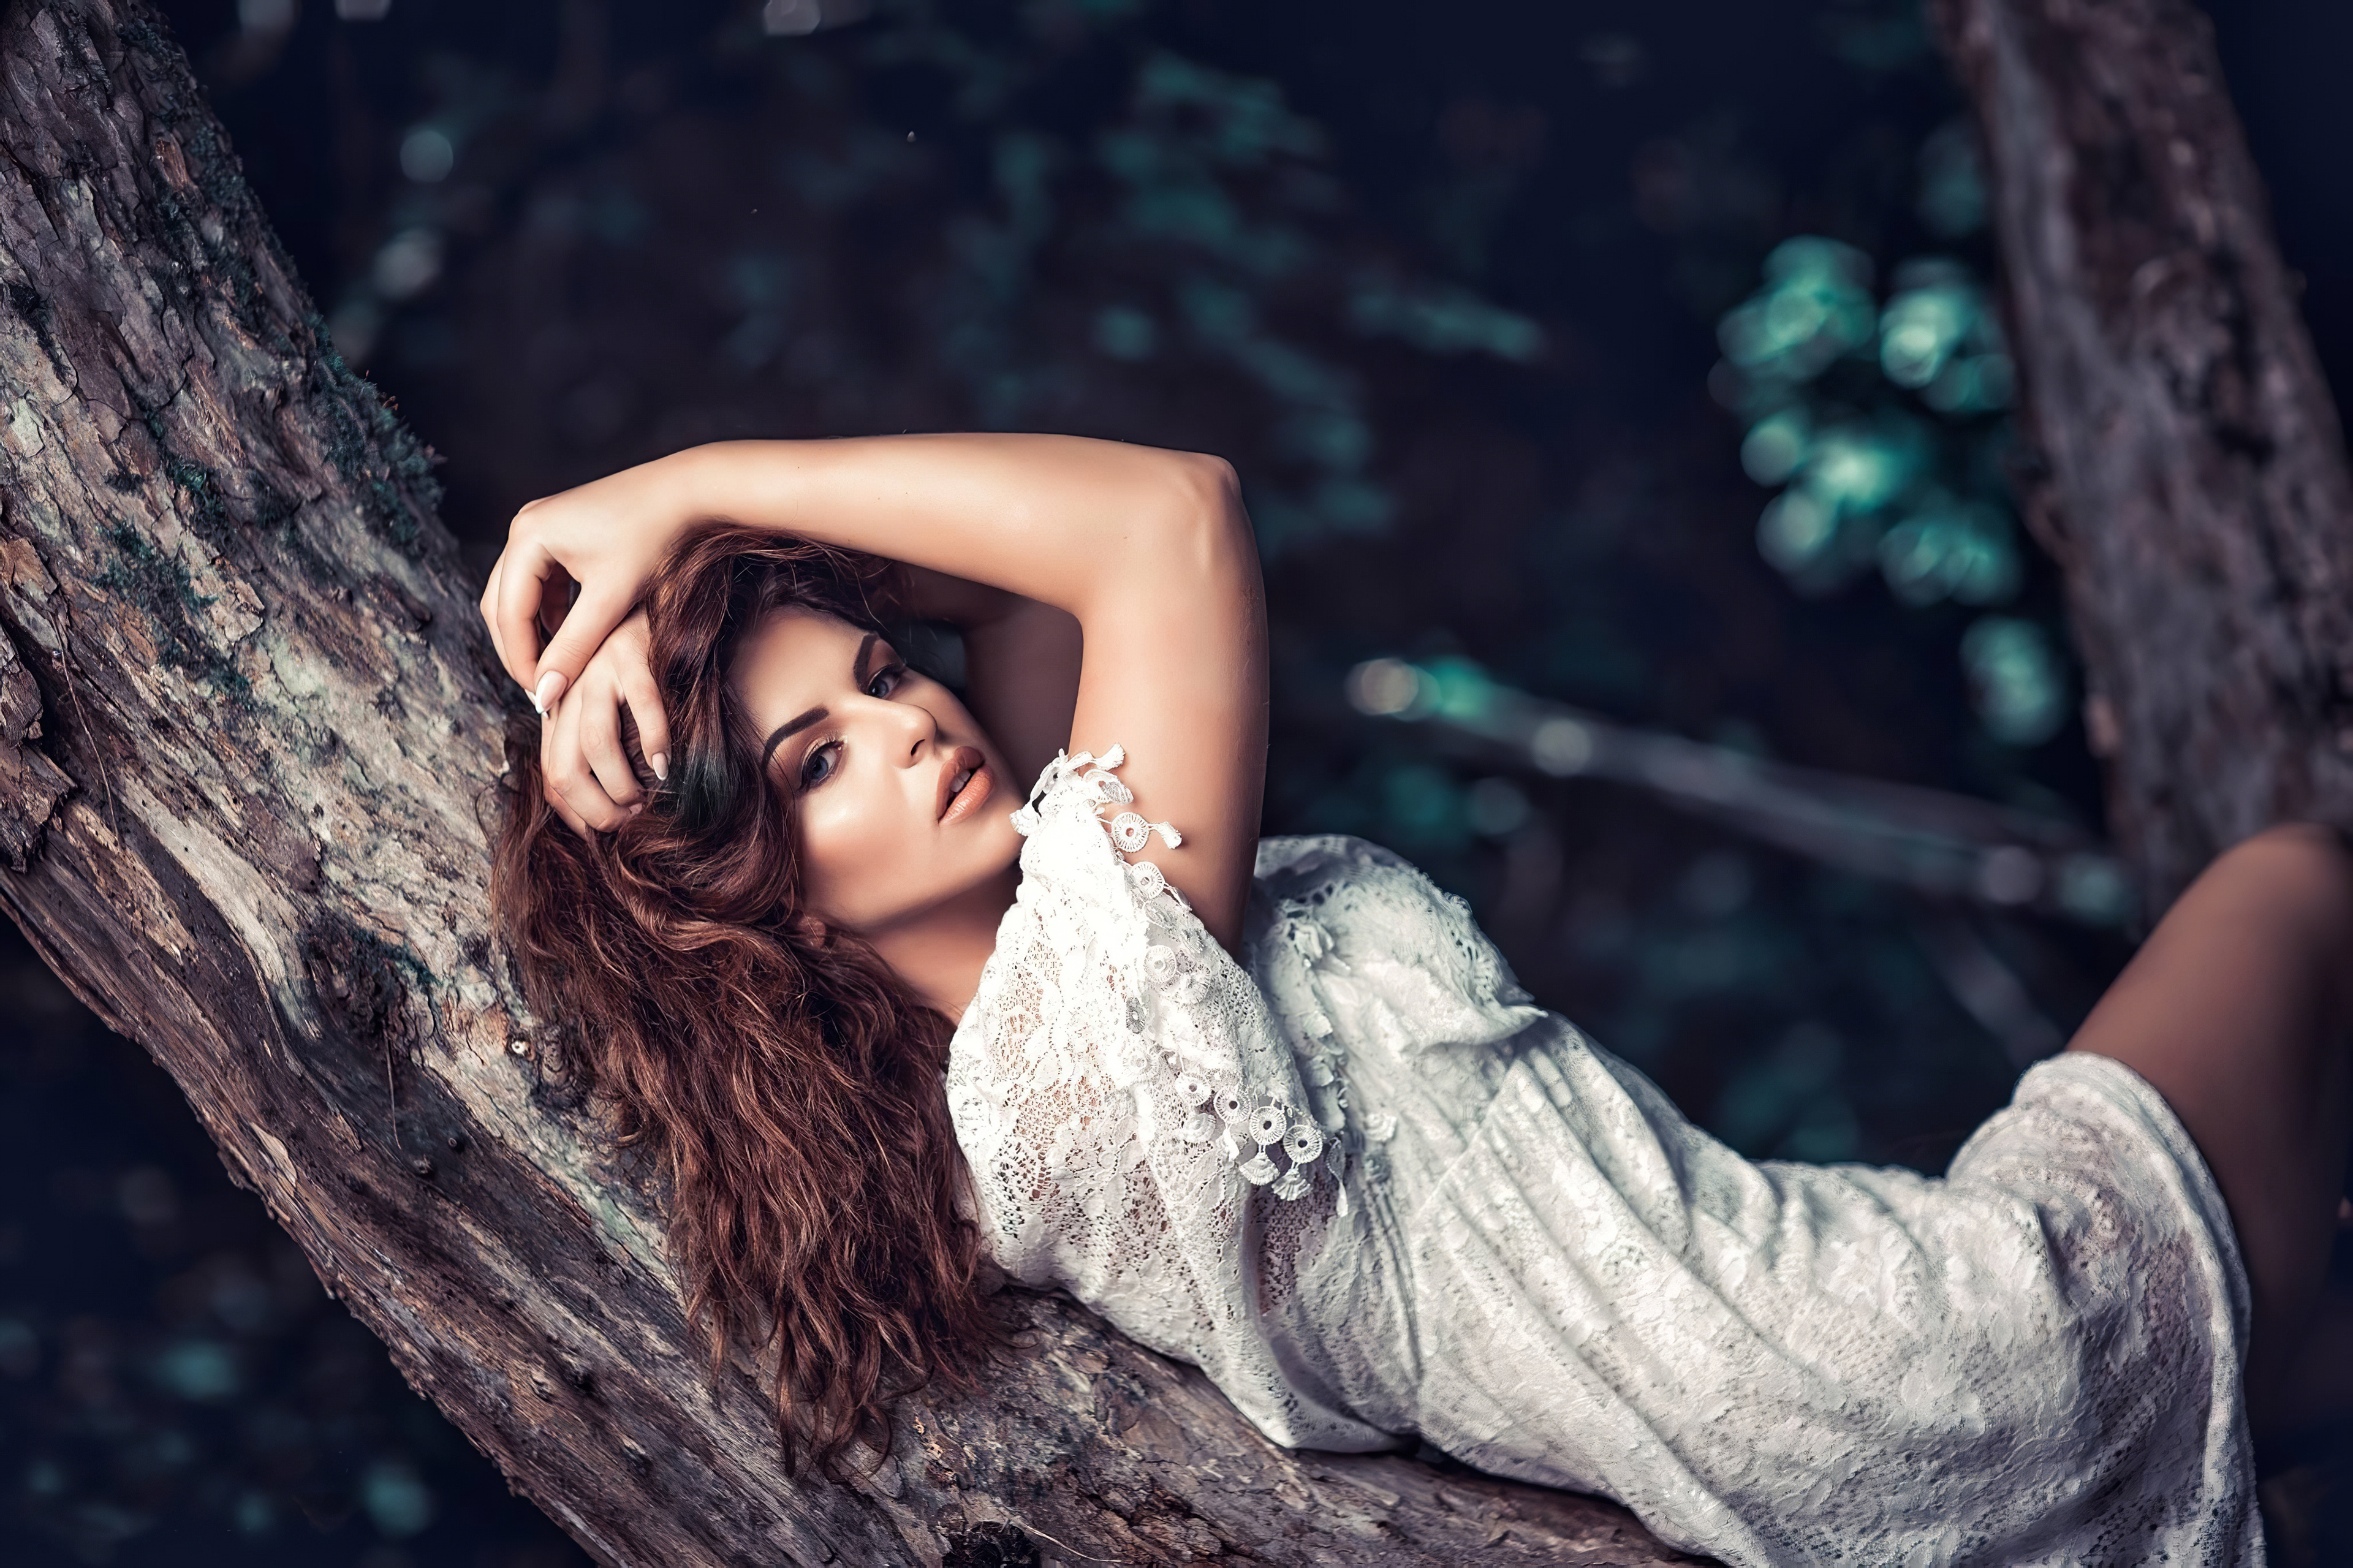 girl lying on a tree branch 1575666208 - Girl Lying On A Tree Branch -